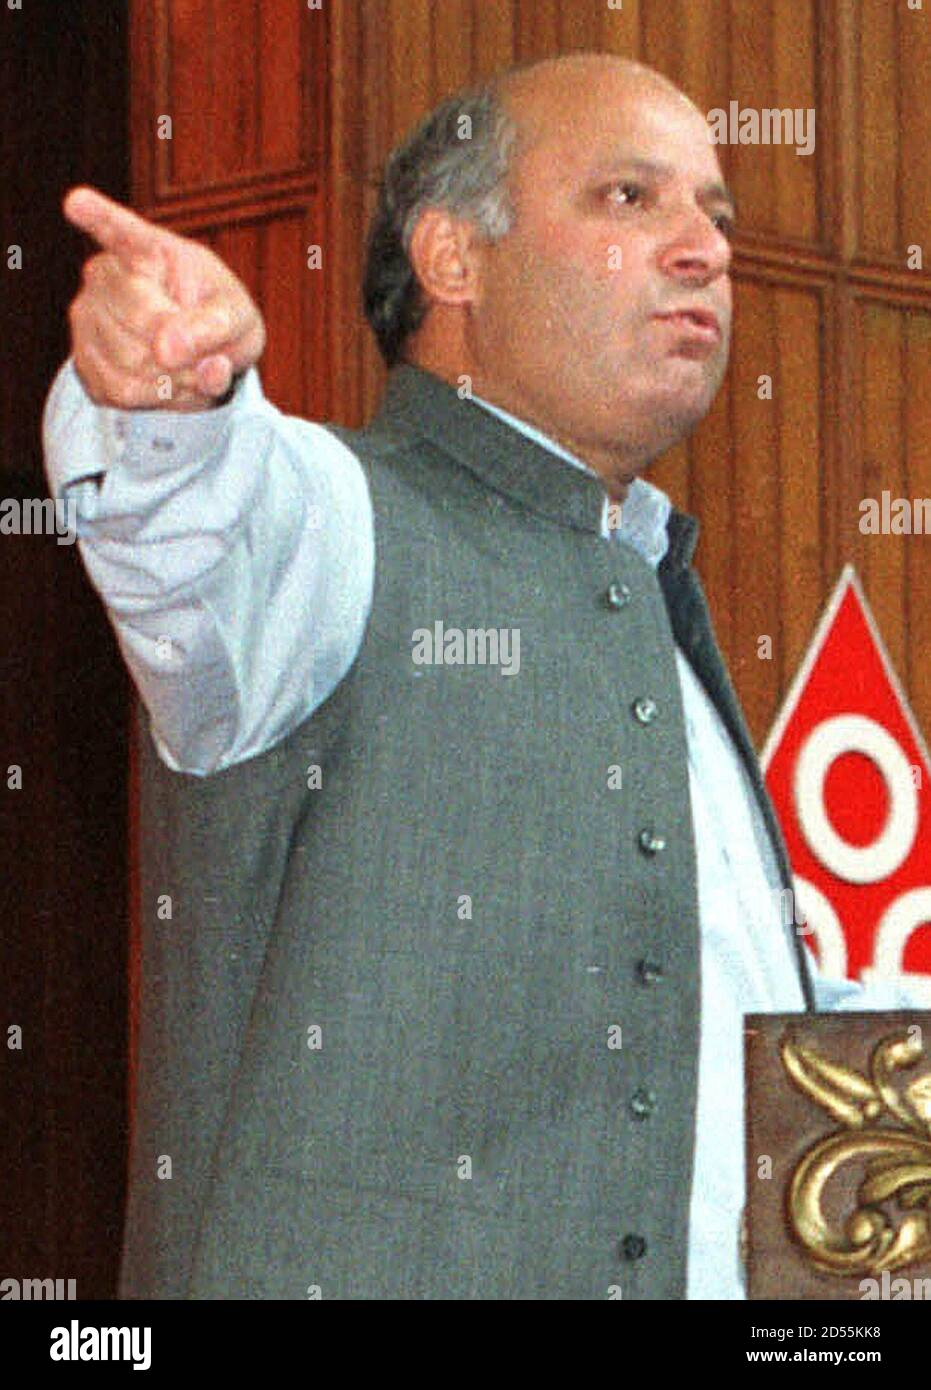 Prime Minister Nawaz Sharif speaks to the inaugural session of the second Overseas Pakistanis Convention in Islamabad August 25. Sharif said on Wednesday that he was prepared to grant permission to a proposal to allow Pakistanis living abroad to pool their resources and launch an airline and a bank, provided the idea was feasible.  MP/DL/KM Stock Photo